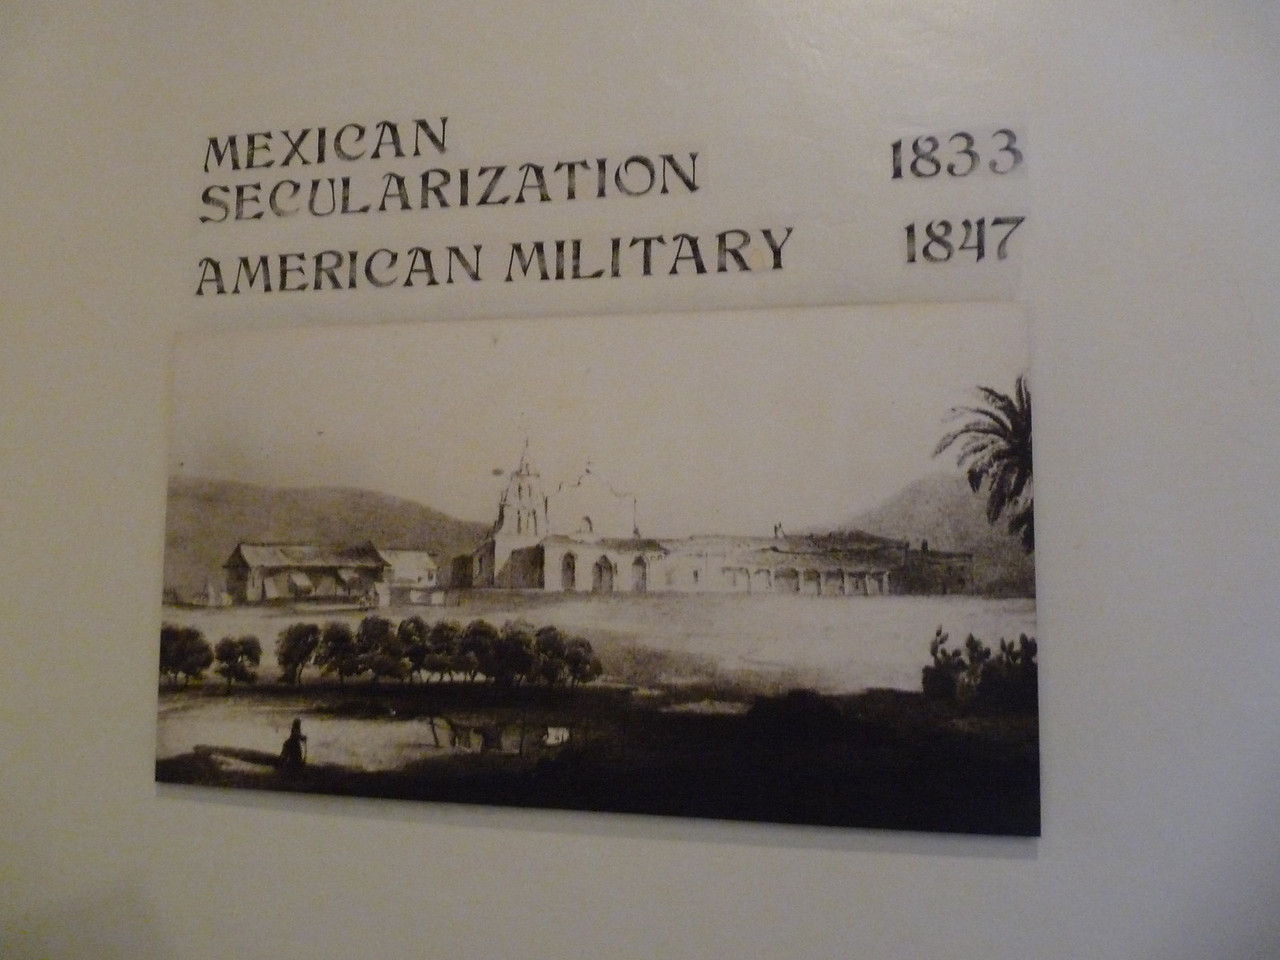 a tile showing occupation timeline<br /> <br /> In 1821, when Mexico gained its independence, Mission San DIego was given over the Santiago Arguello.<br /> <br /> After the US v. Mexican war and the signing of the Treaty of Guadalupe Hidalgo in 1848, the US Calvary used the mission as a military presence from 1850 to 1857.<br /> <br /> In 1862, by order the President Lincoln, the Mission lands were restored to the Church.